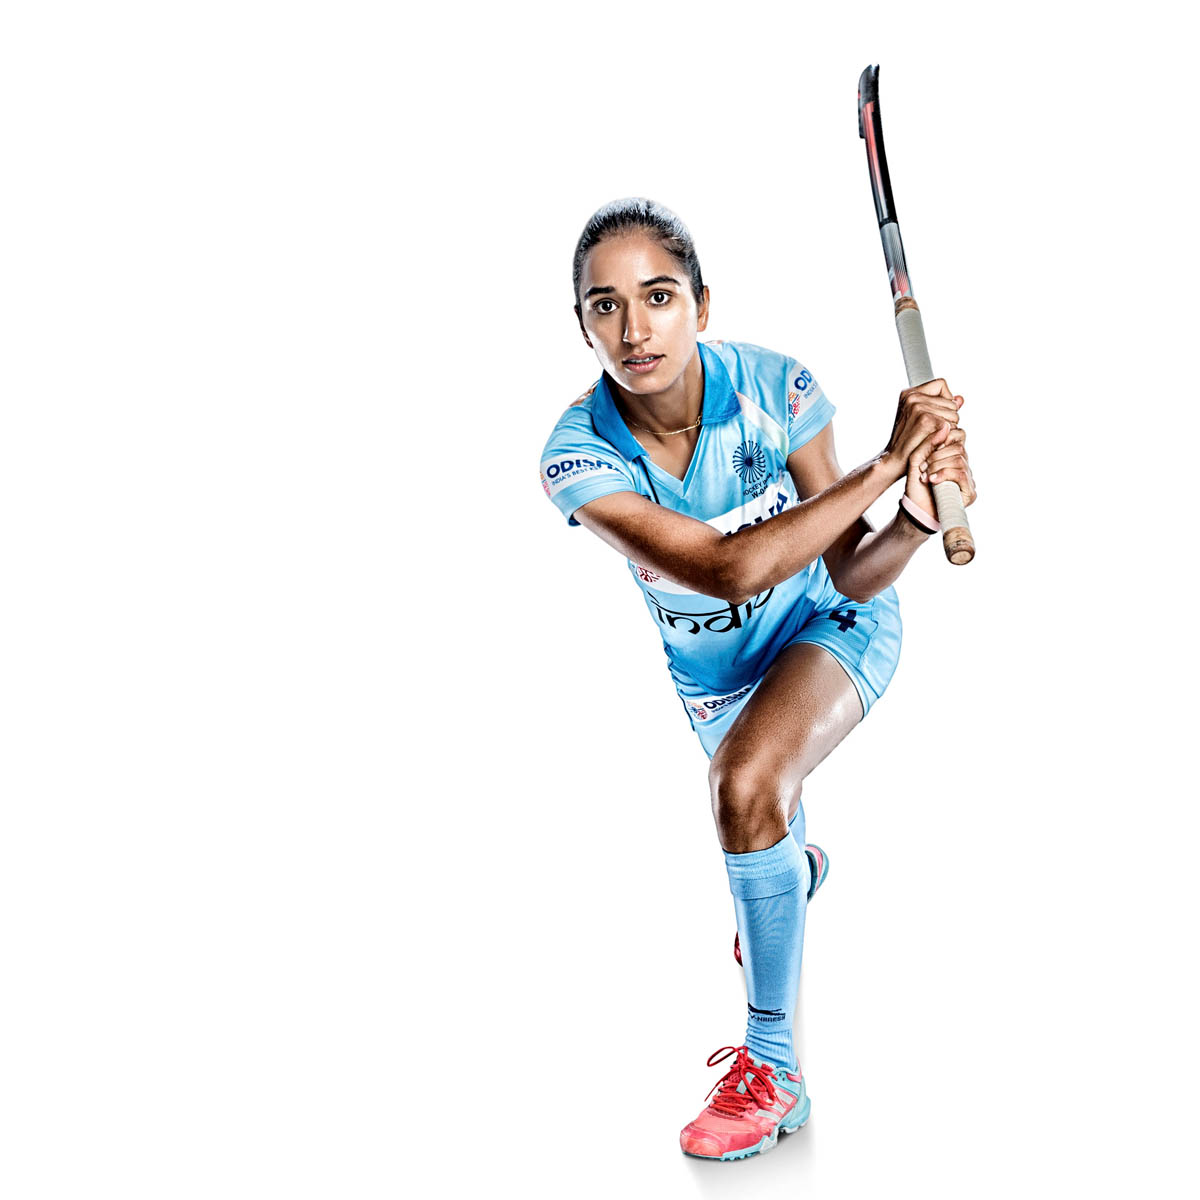 VikramBawa_20180426_0829_IndianWomensHockeyTeam_Monika-Recovered